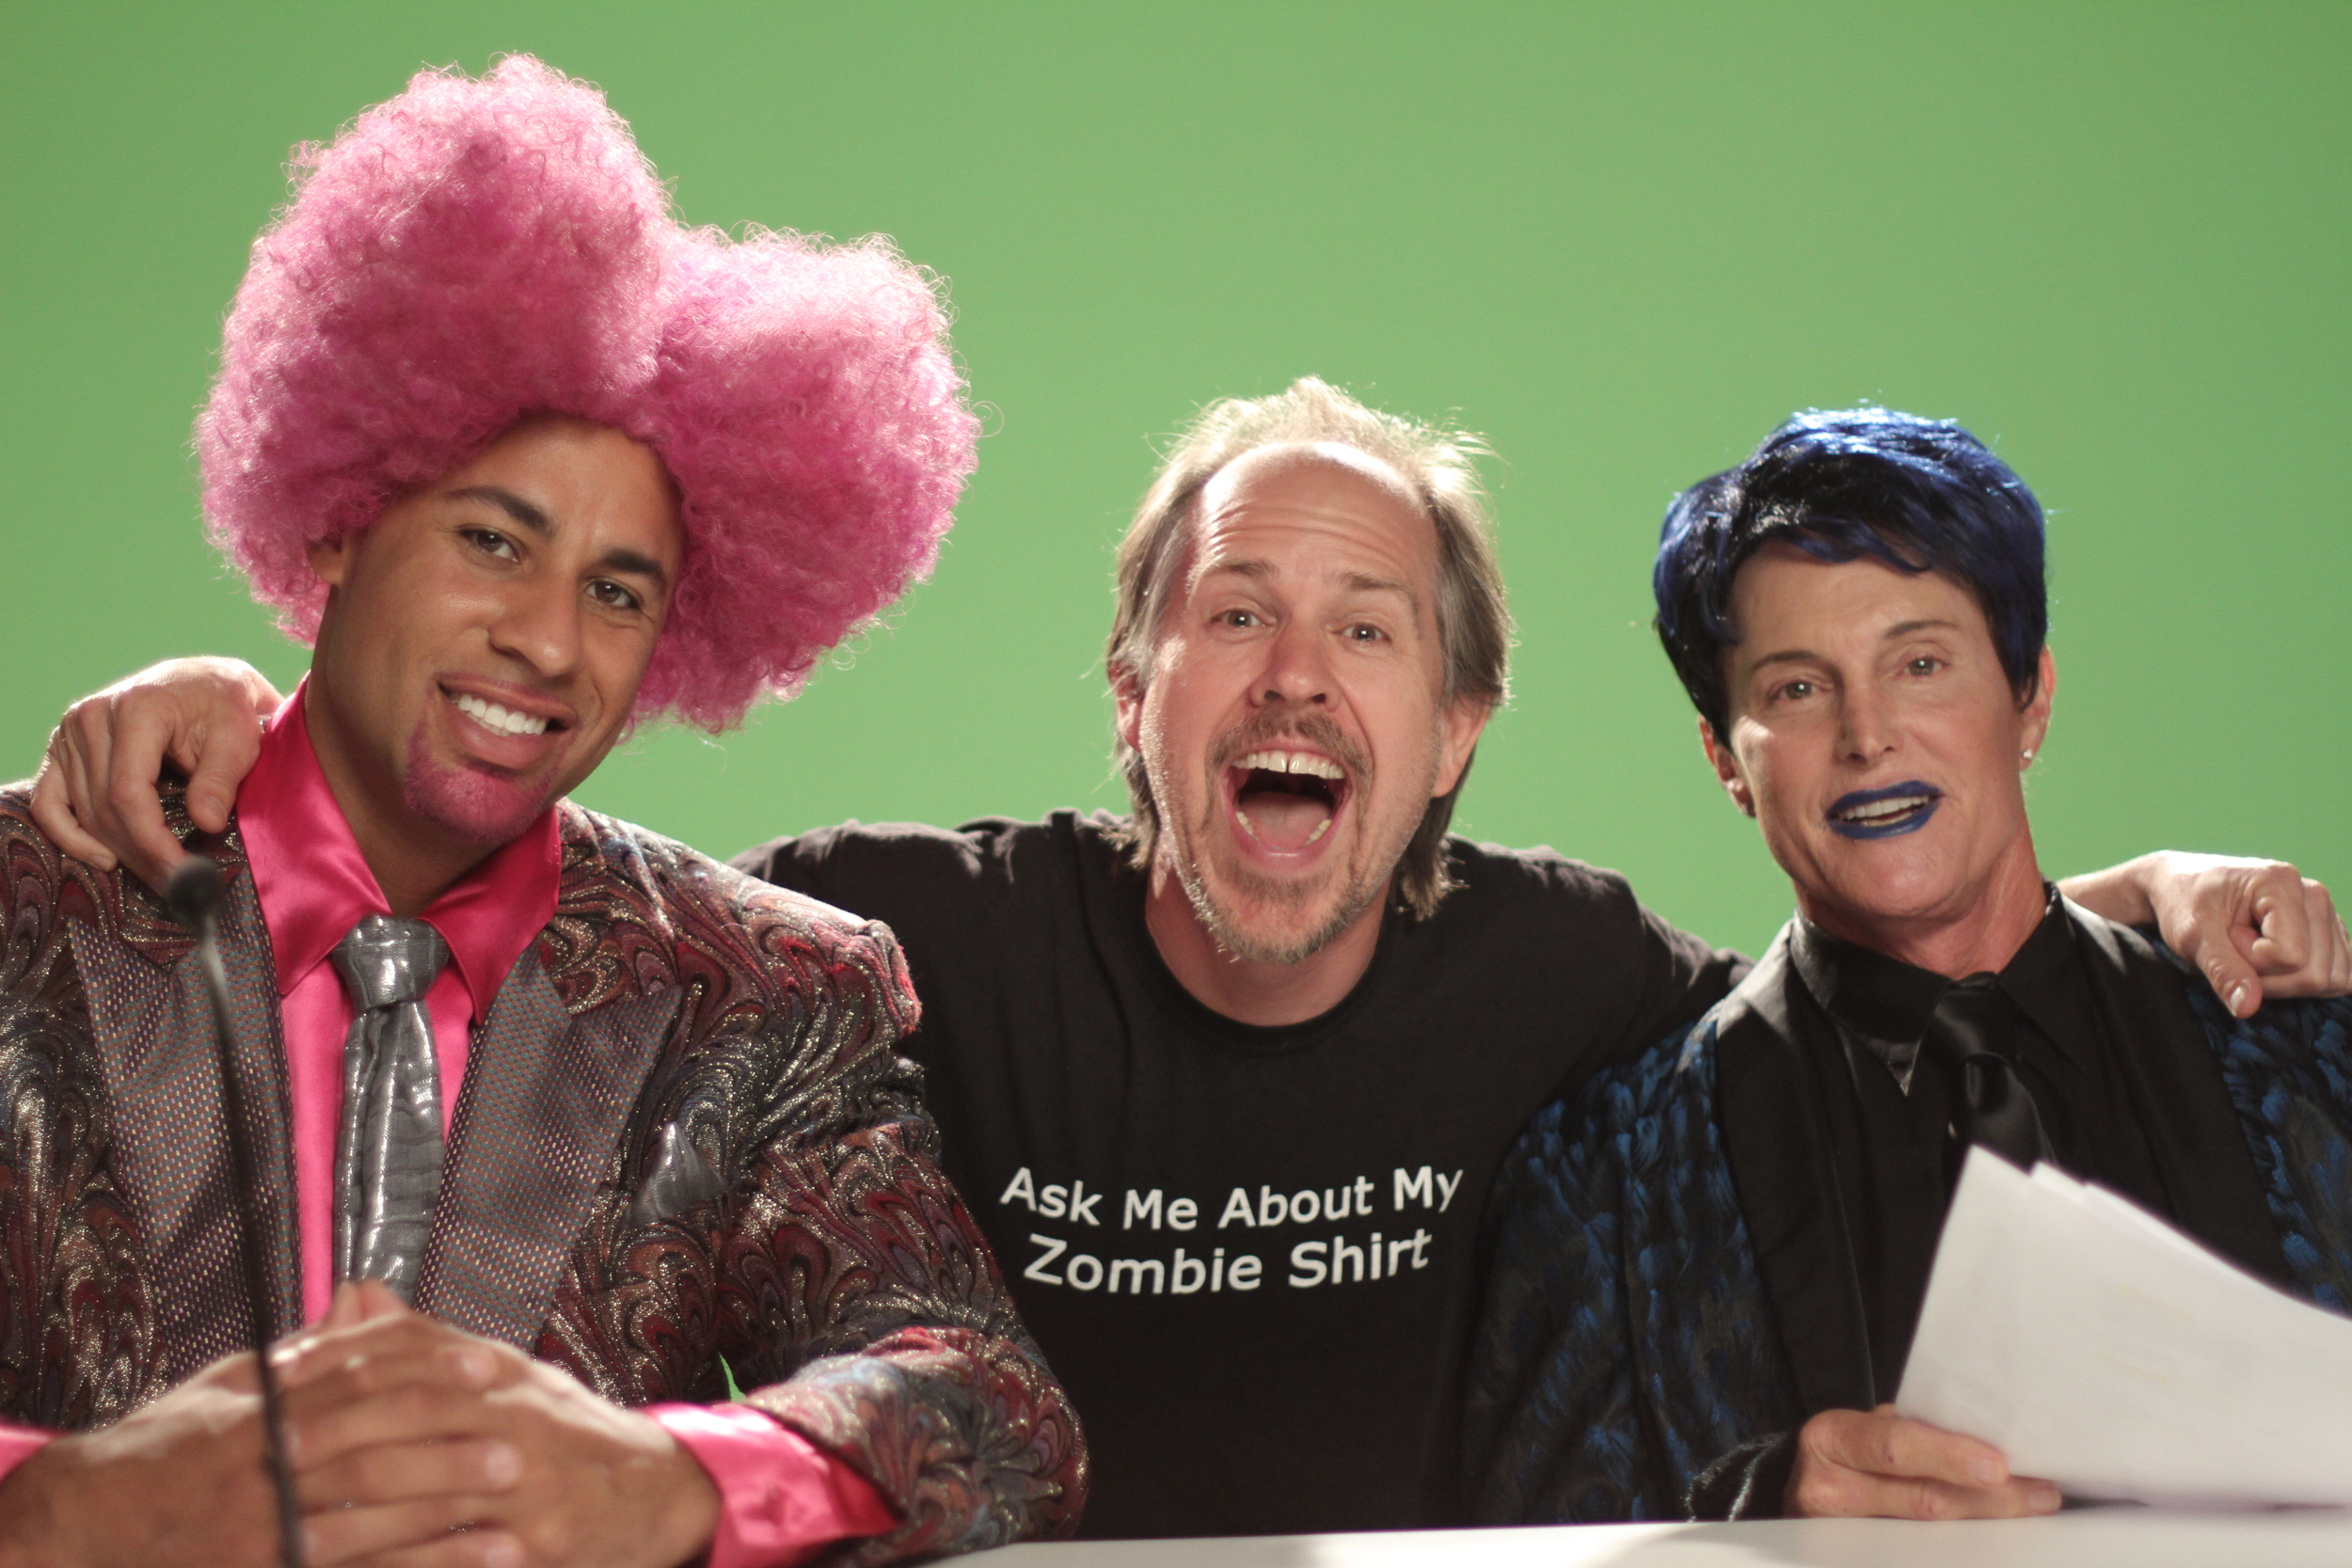 Green Screen with Hank Baskett and Bruce Jenner on The Hungover Games